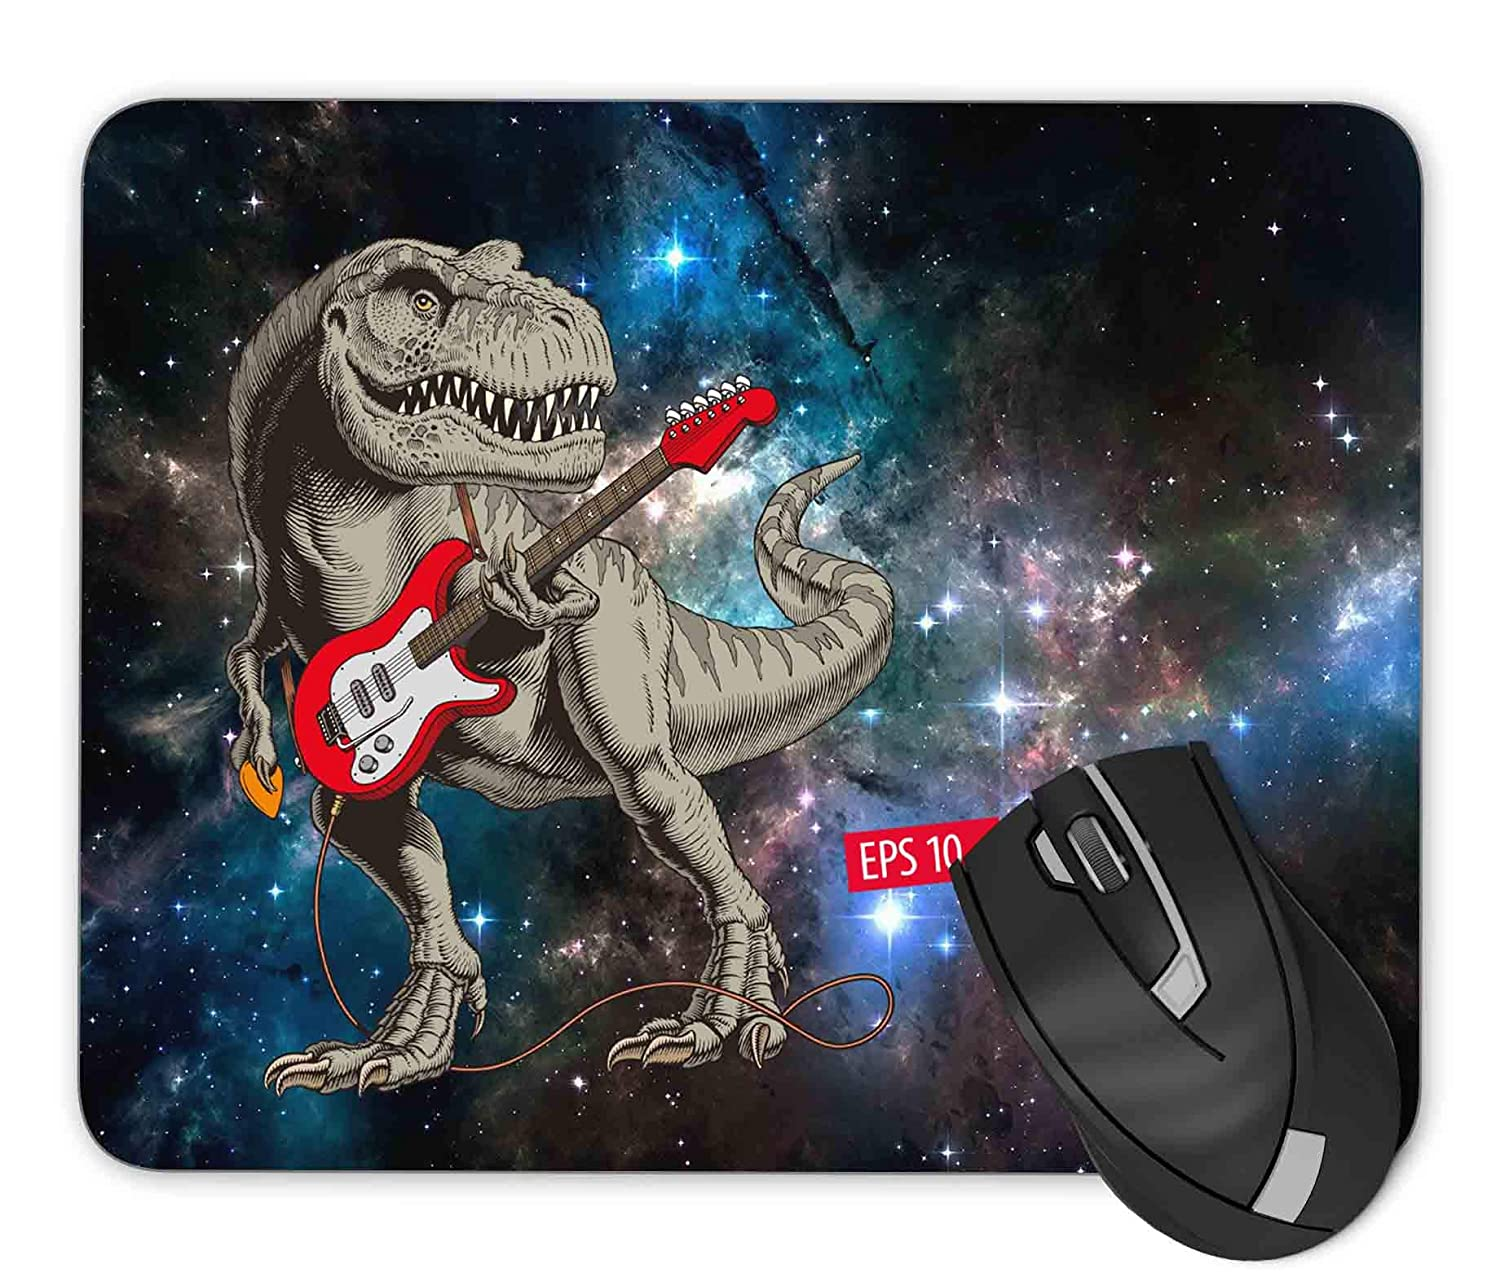 Dinosaur Playing The Guitar Mouse pad Gaming Mouse pad Mousepad Nonslip Rubber Backing